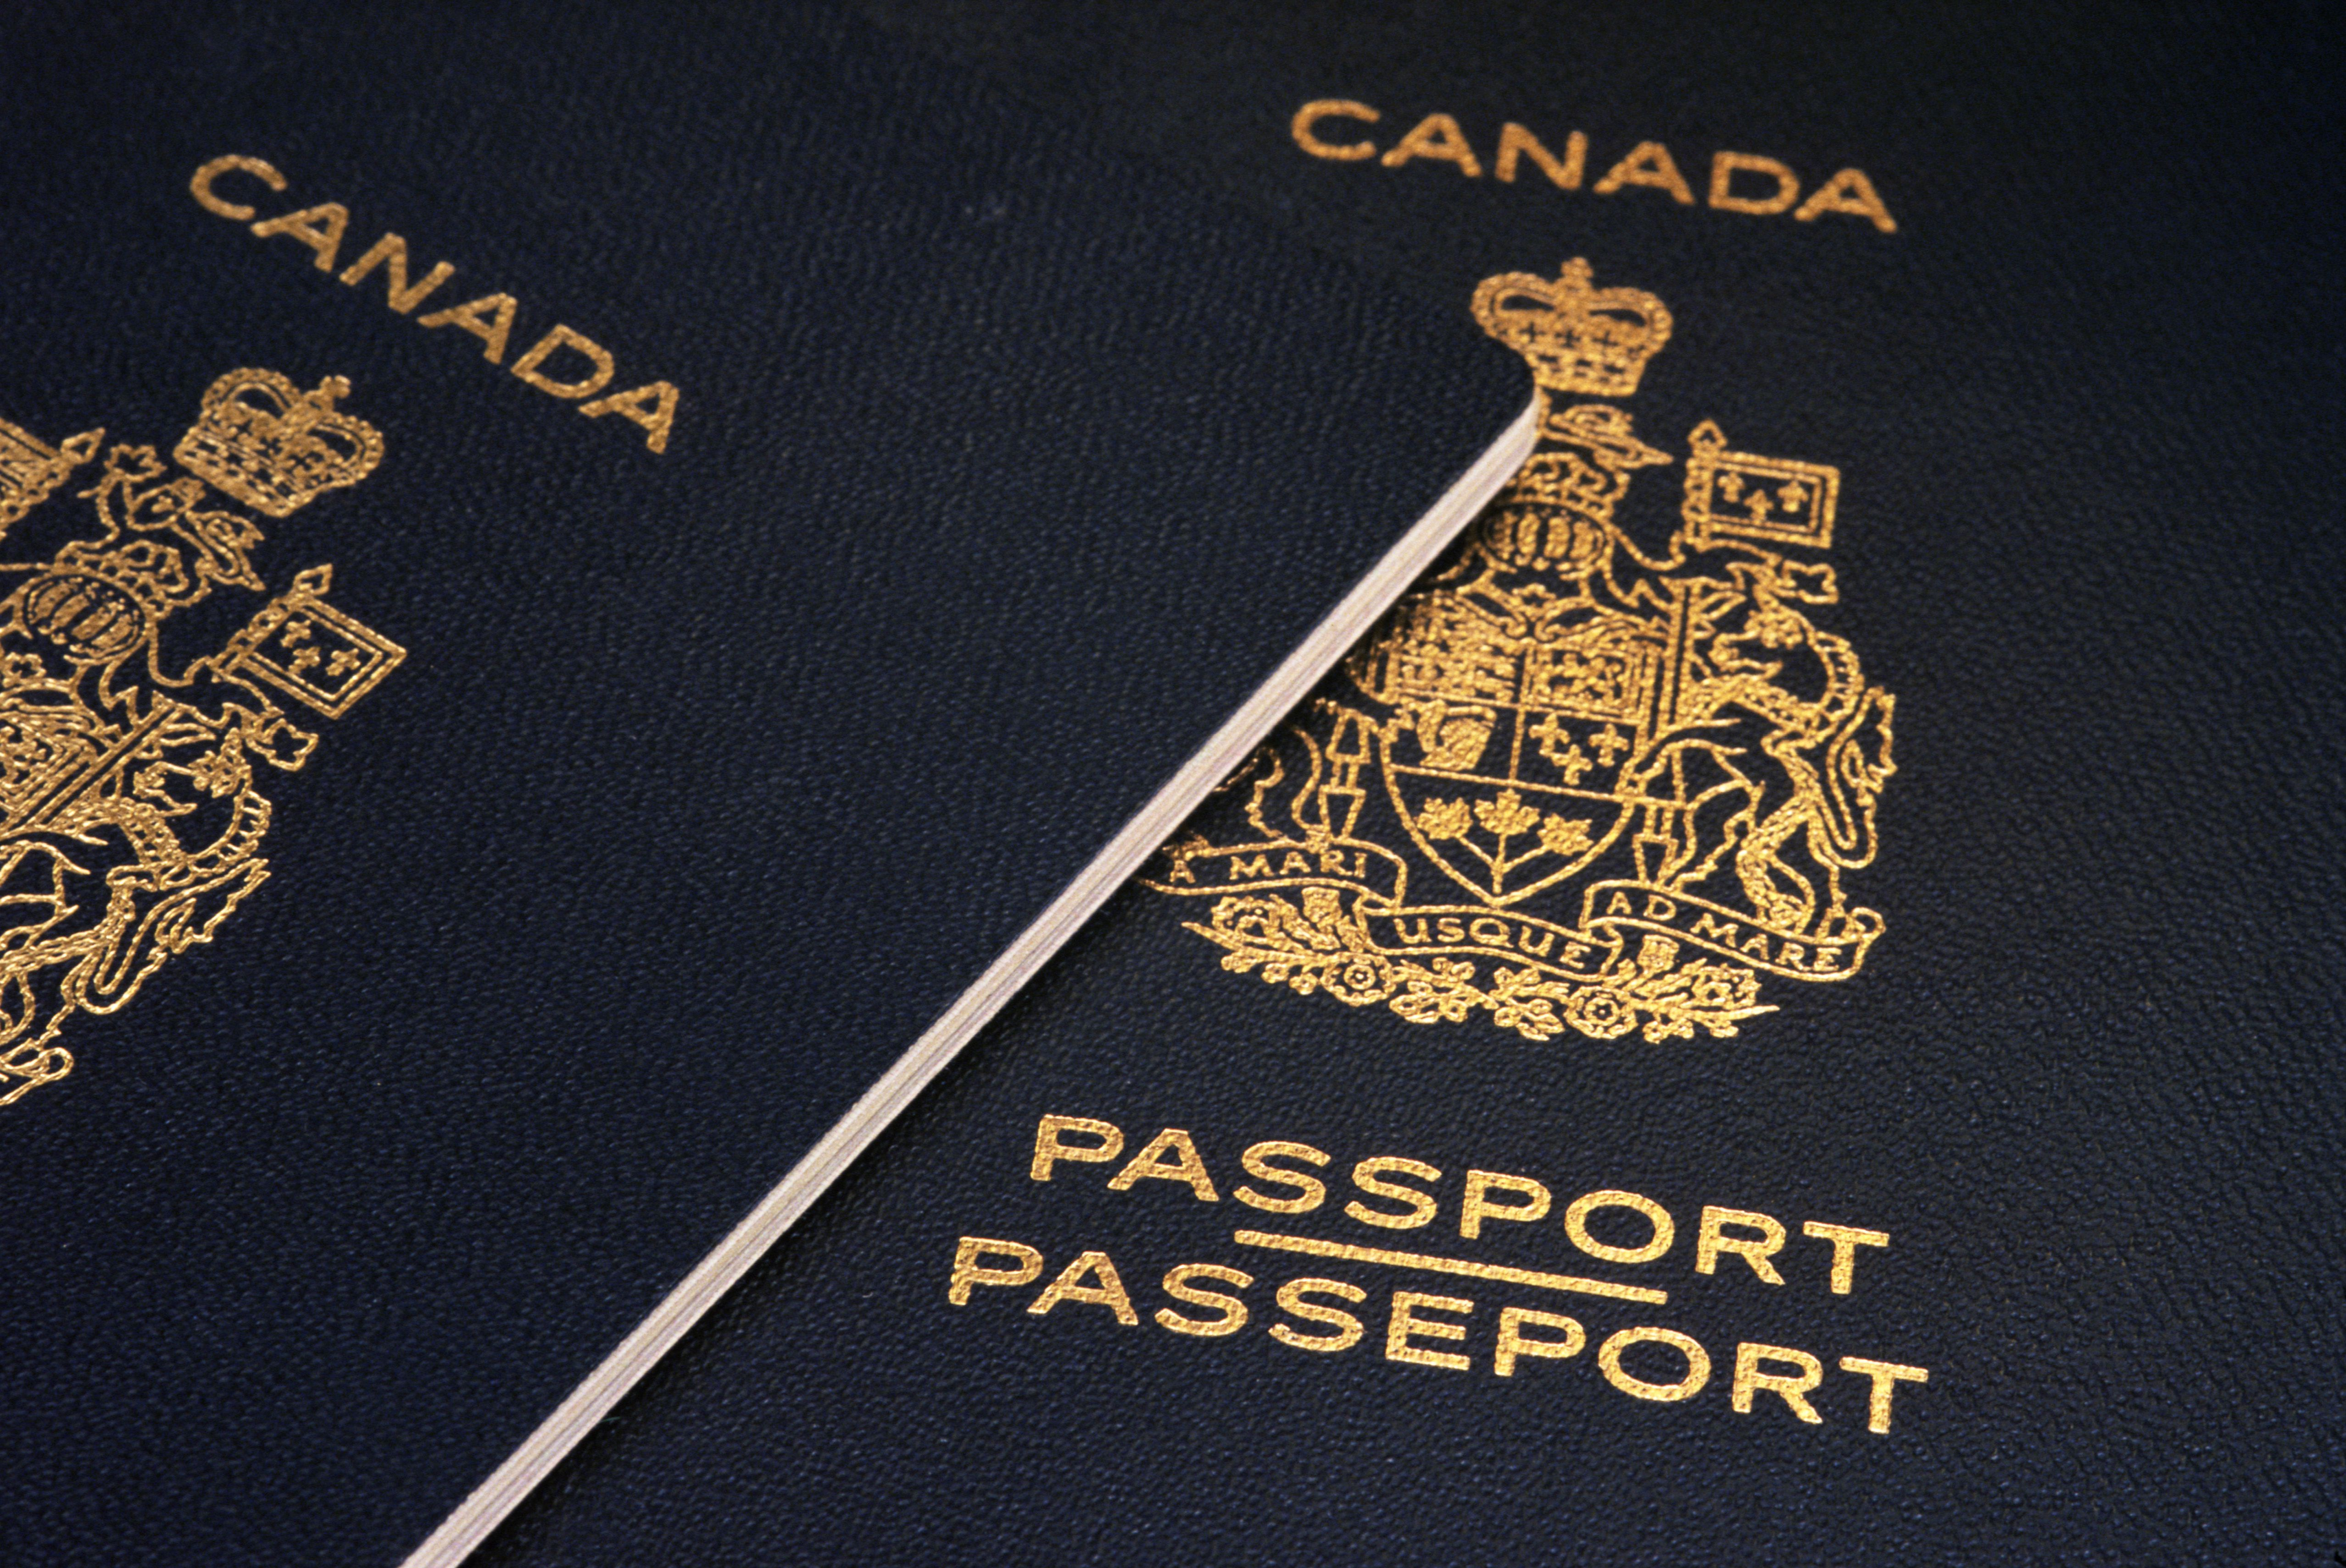 Passport Photo Software - Print Your Own Passport Photos Canadian passport photos toronto